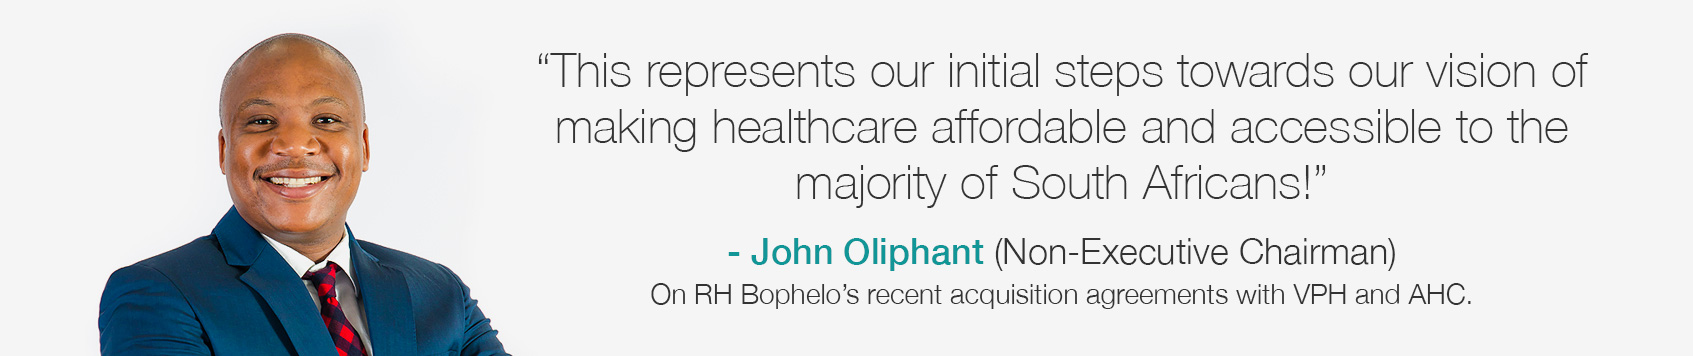 John Oliphant on RH Bophelo's recent acquisition agreements with VPH and AHC